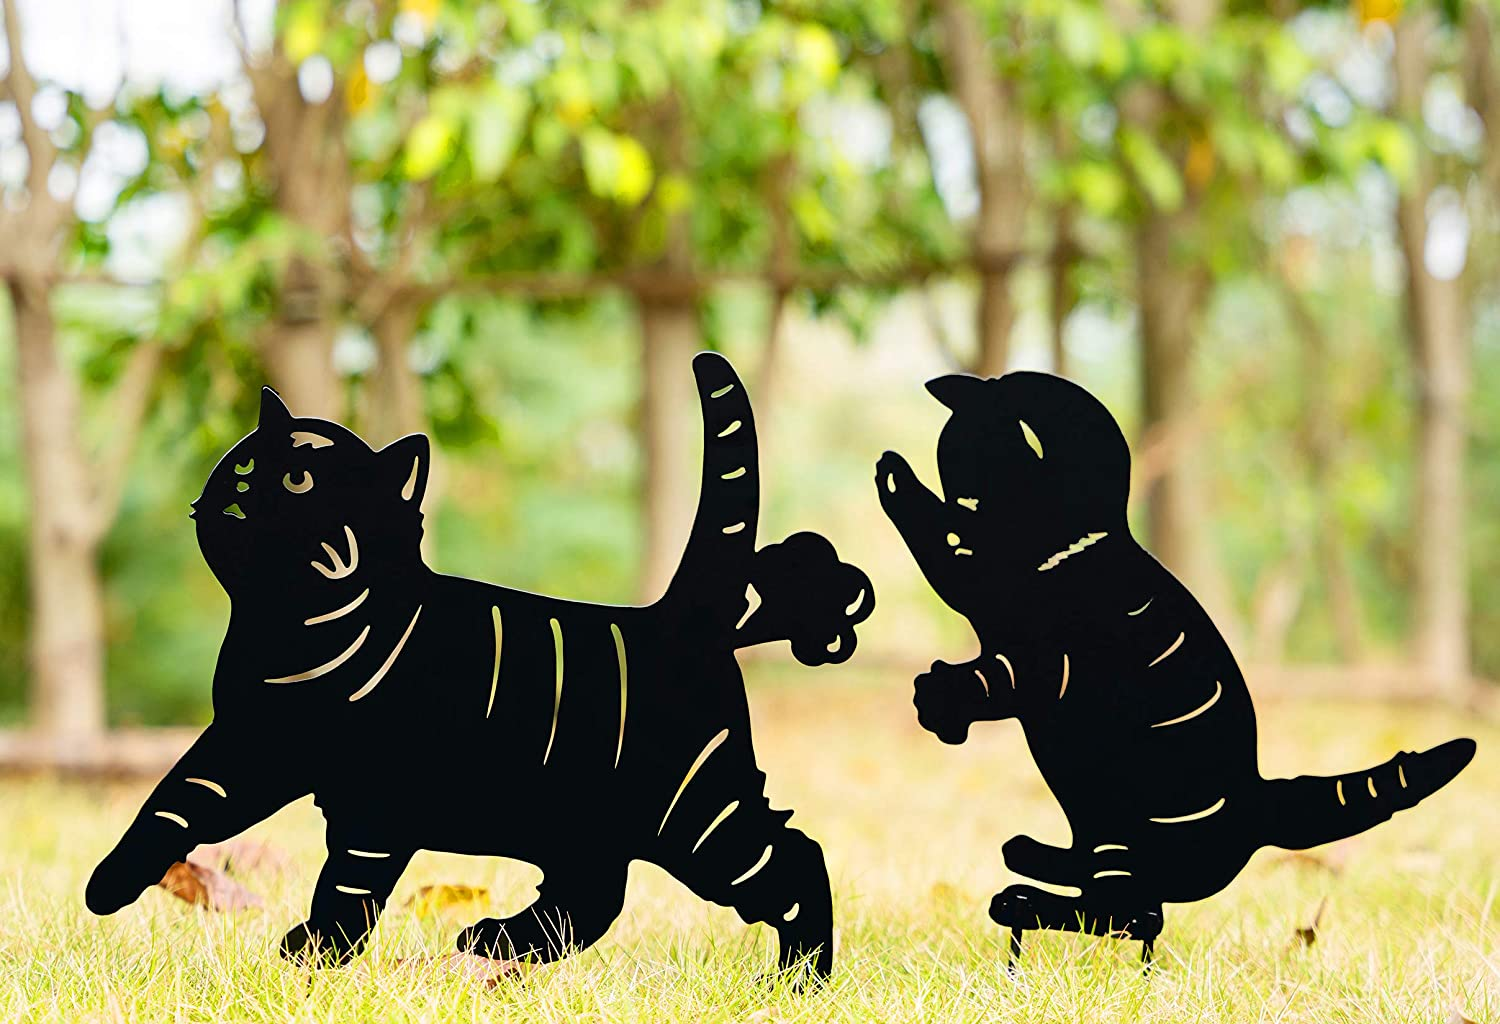 TT & MM Metal Animal Silhouette Yard Stake - Garden Decor Cat Kitten Shadow Stakes - Cat Combinations Set of 2 Yard Signs Outdoor Decor